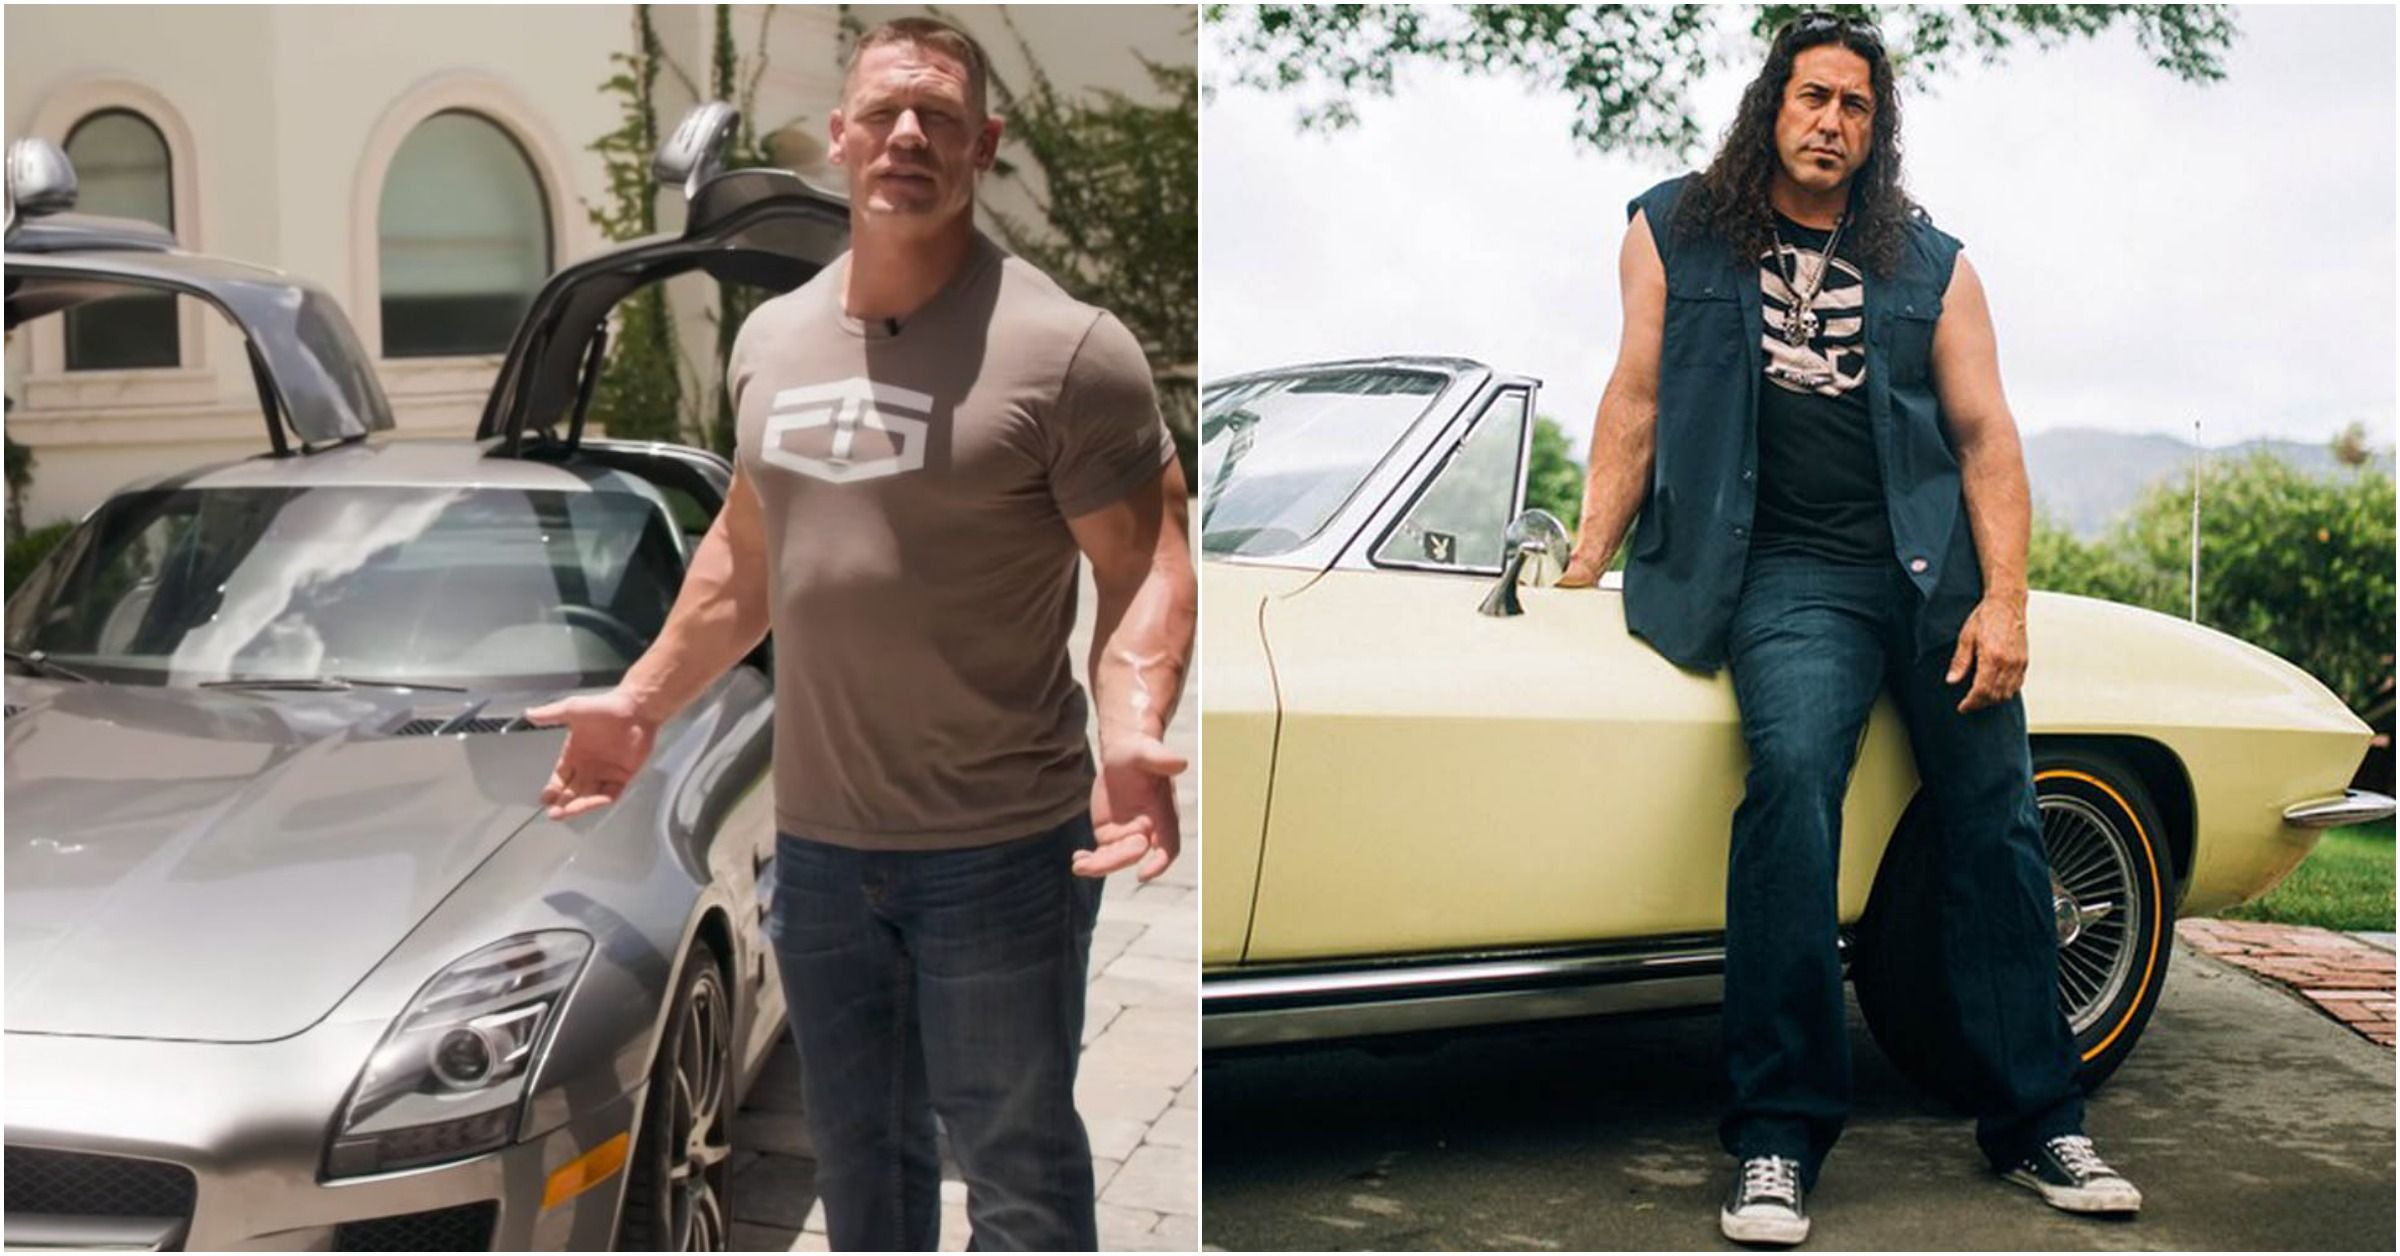 10 WWE Wrestlers Who Drive The Sickest Cars (5 Who Drive Beaters)